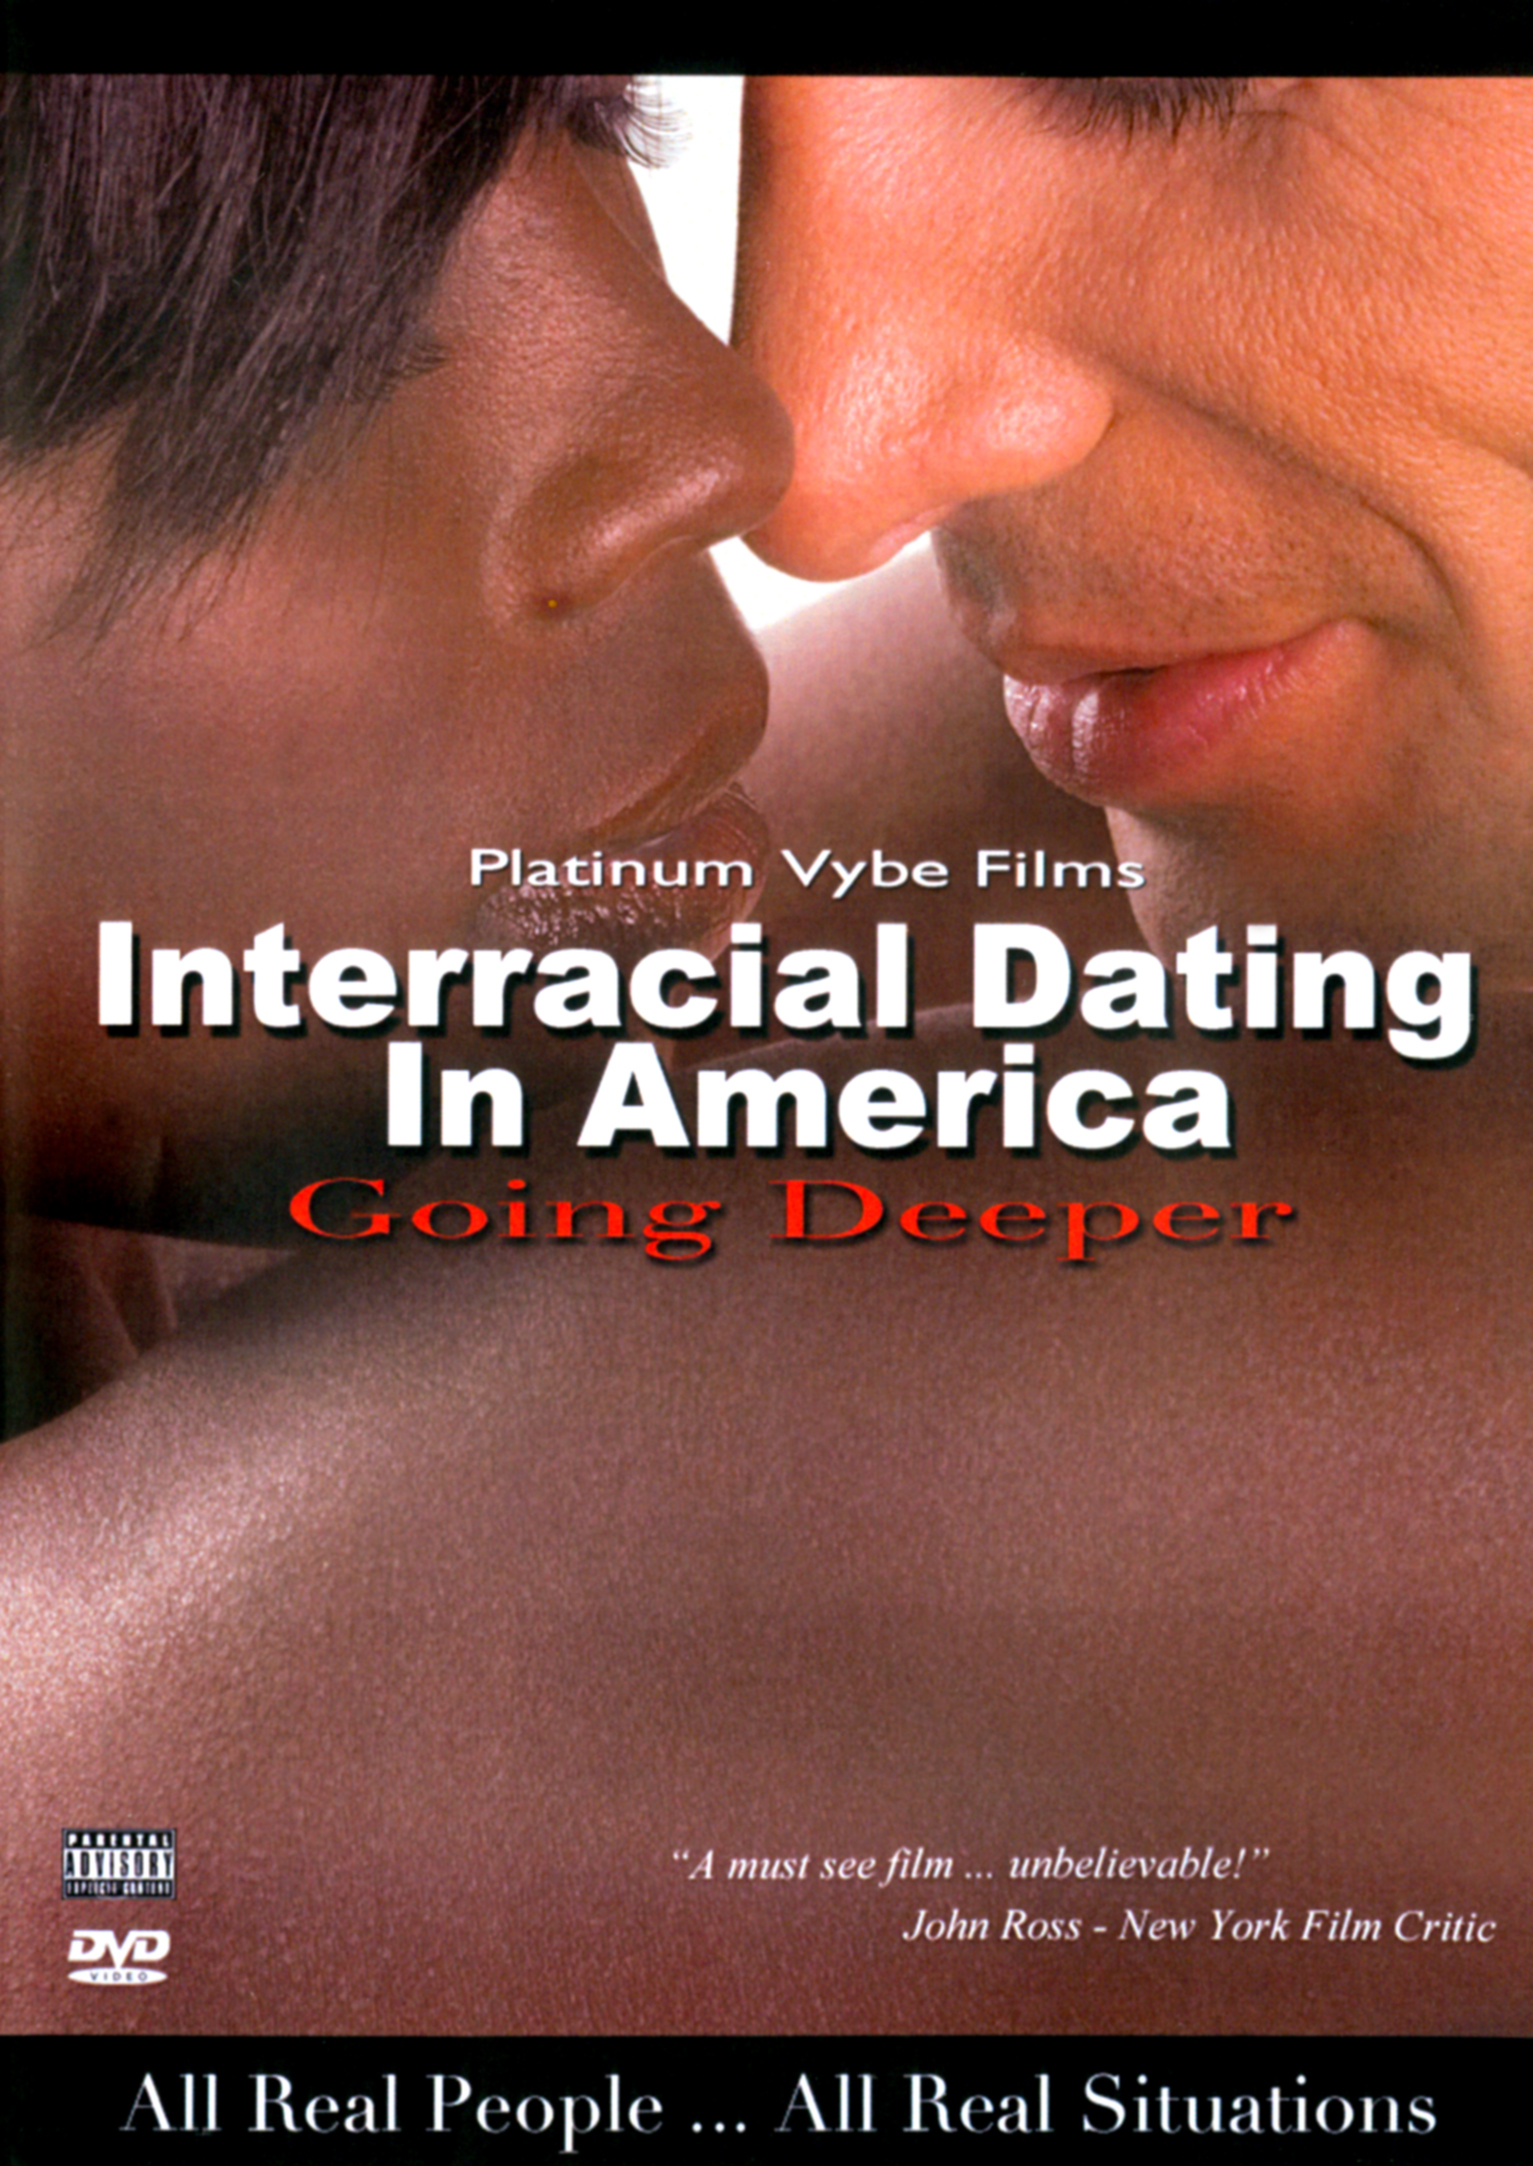 america dating in interracial uncovered